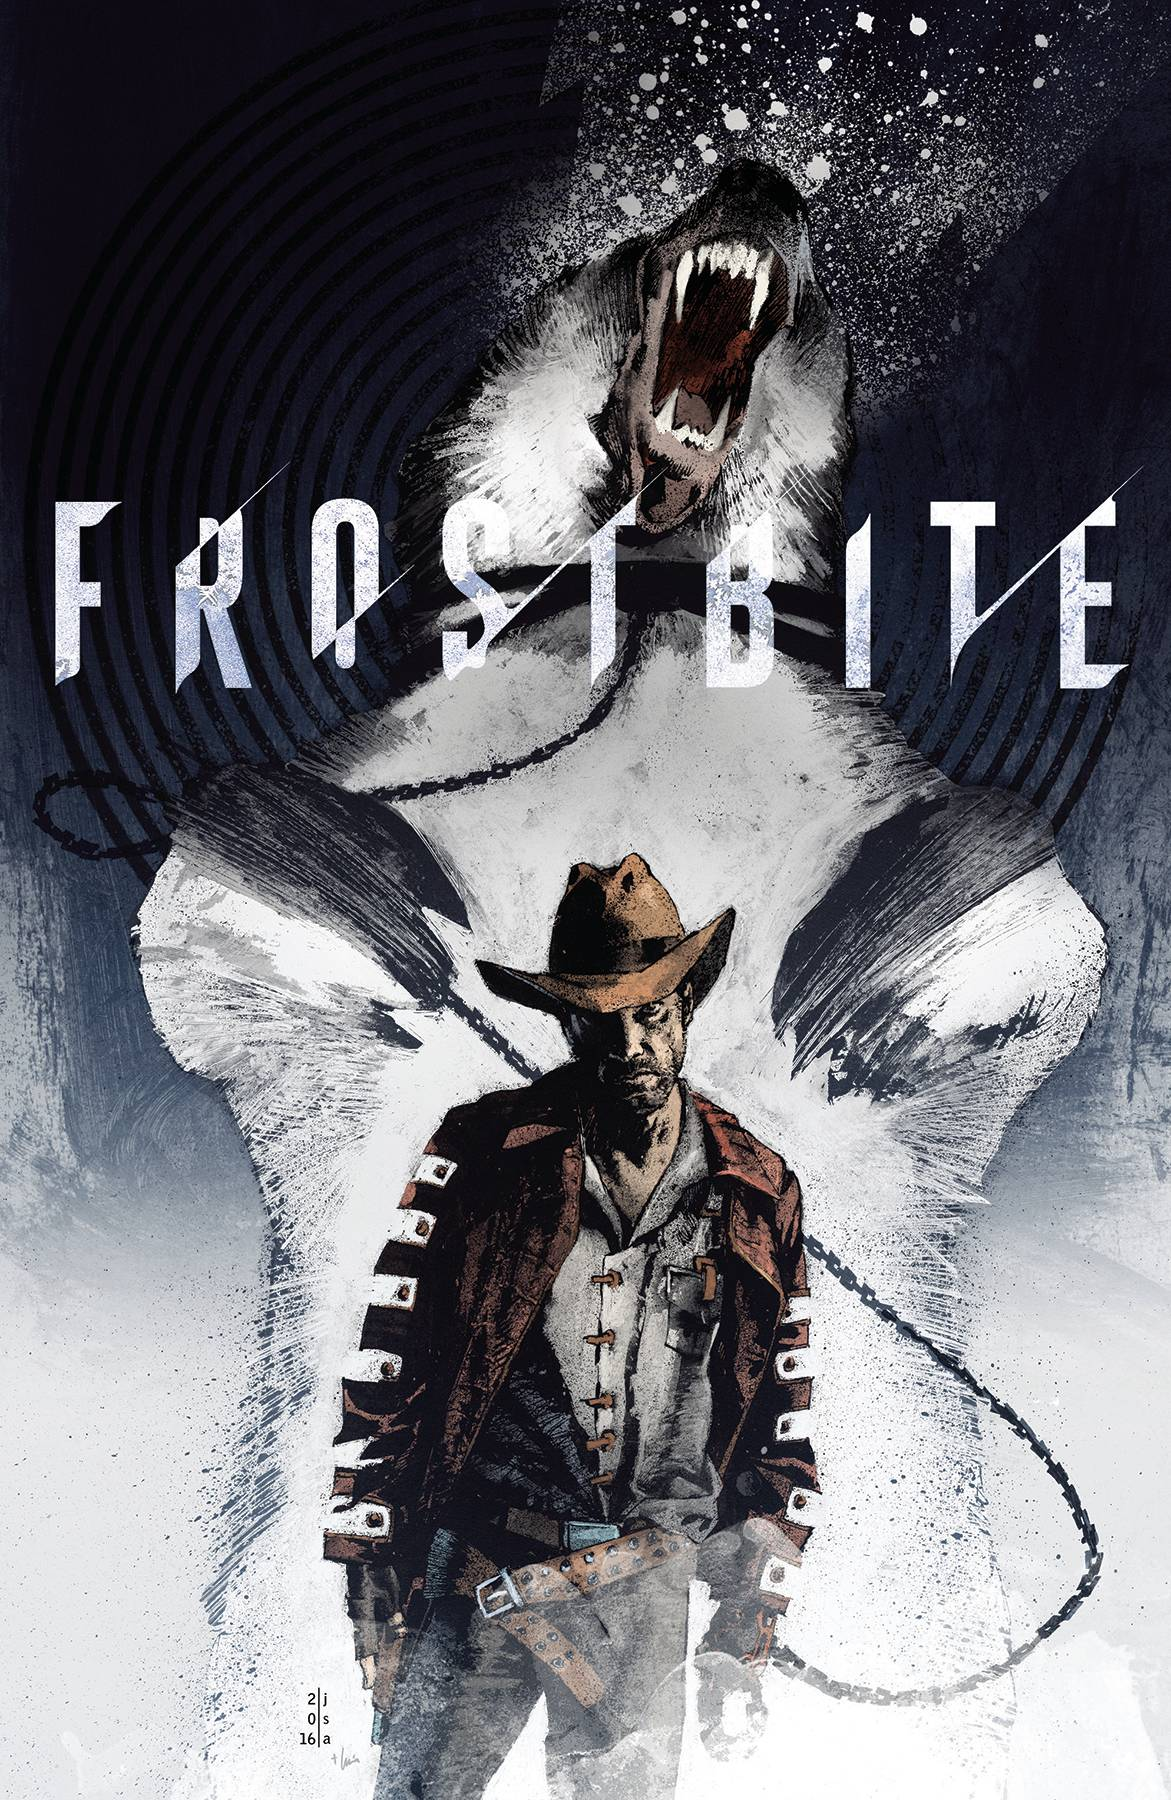 FROSTBITE #4 (OF 6)